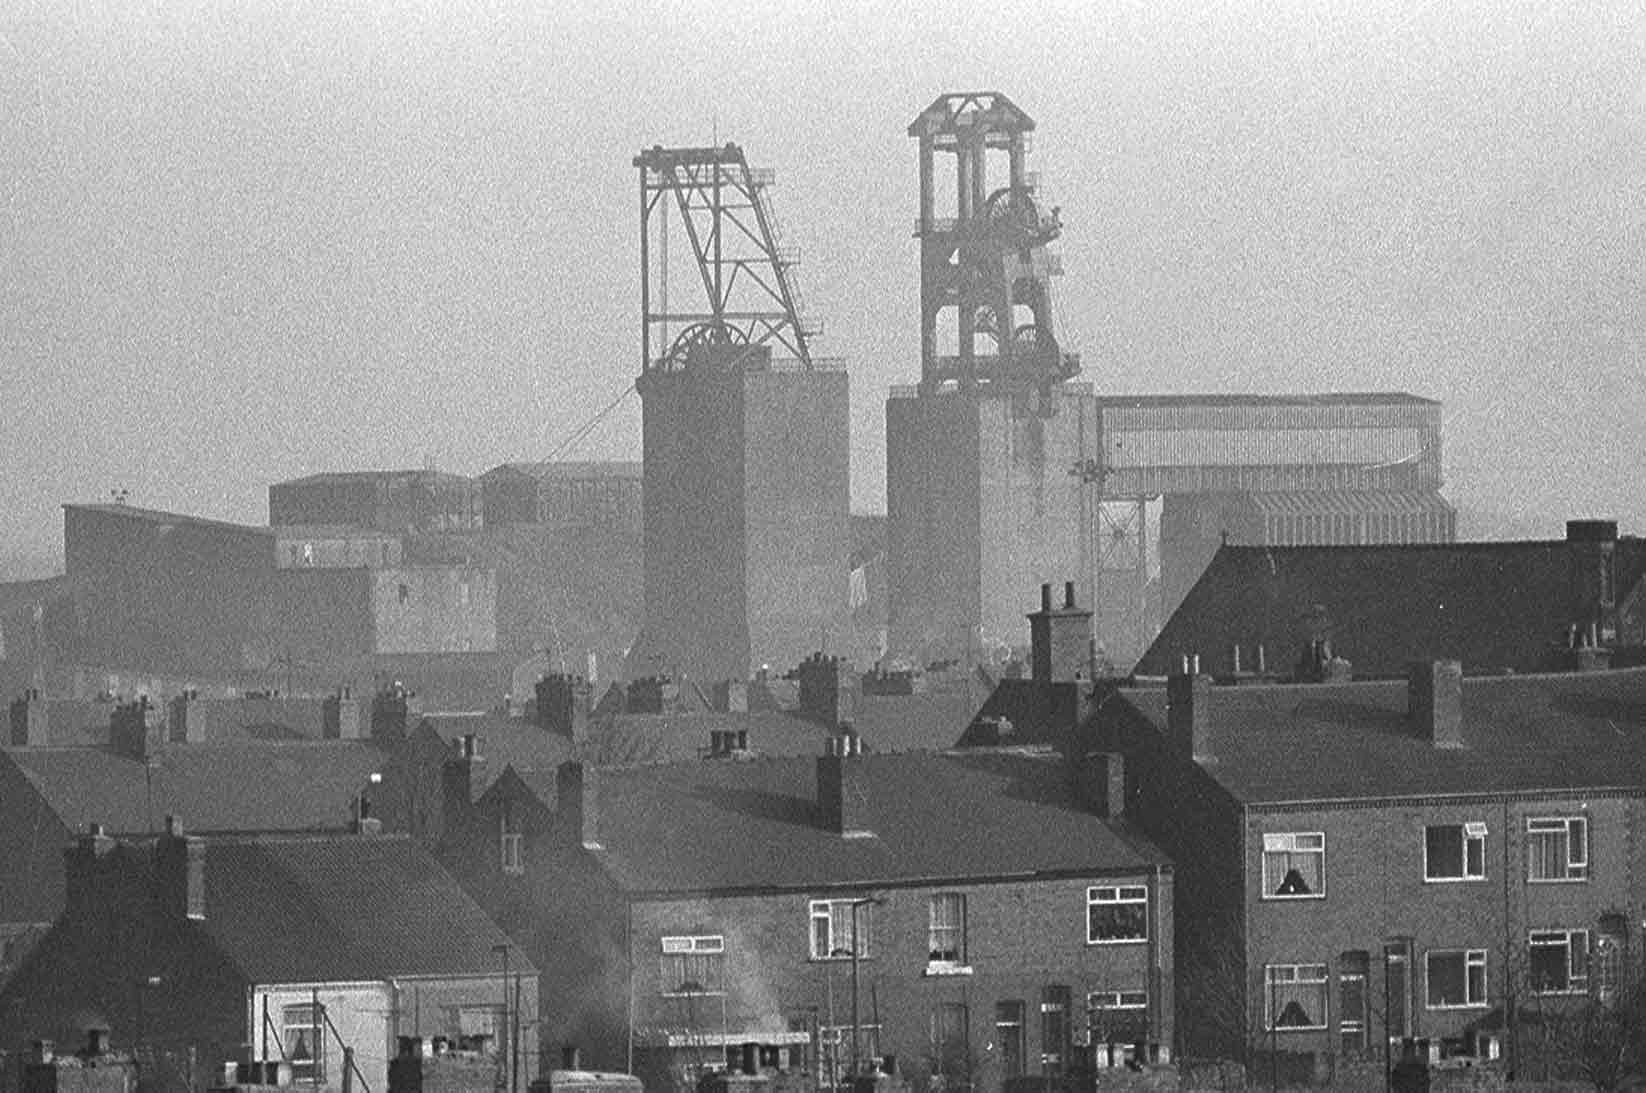 Shirebrook Colliery and Village